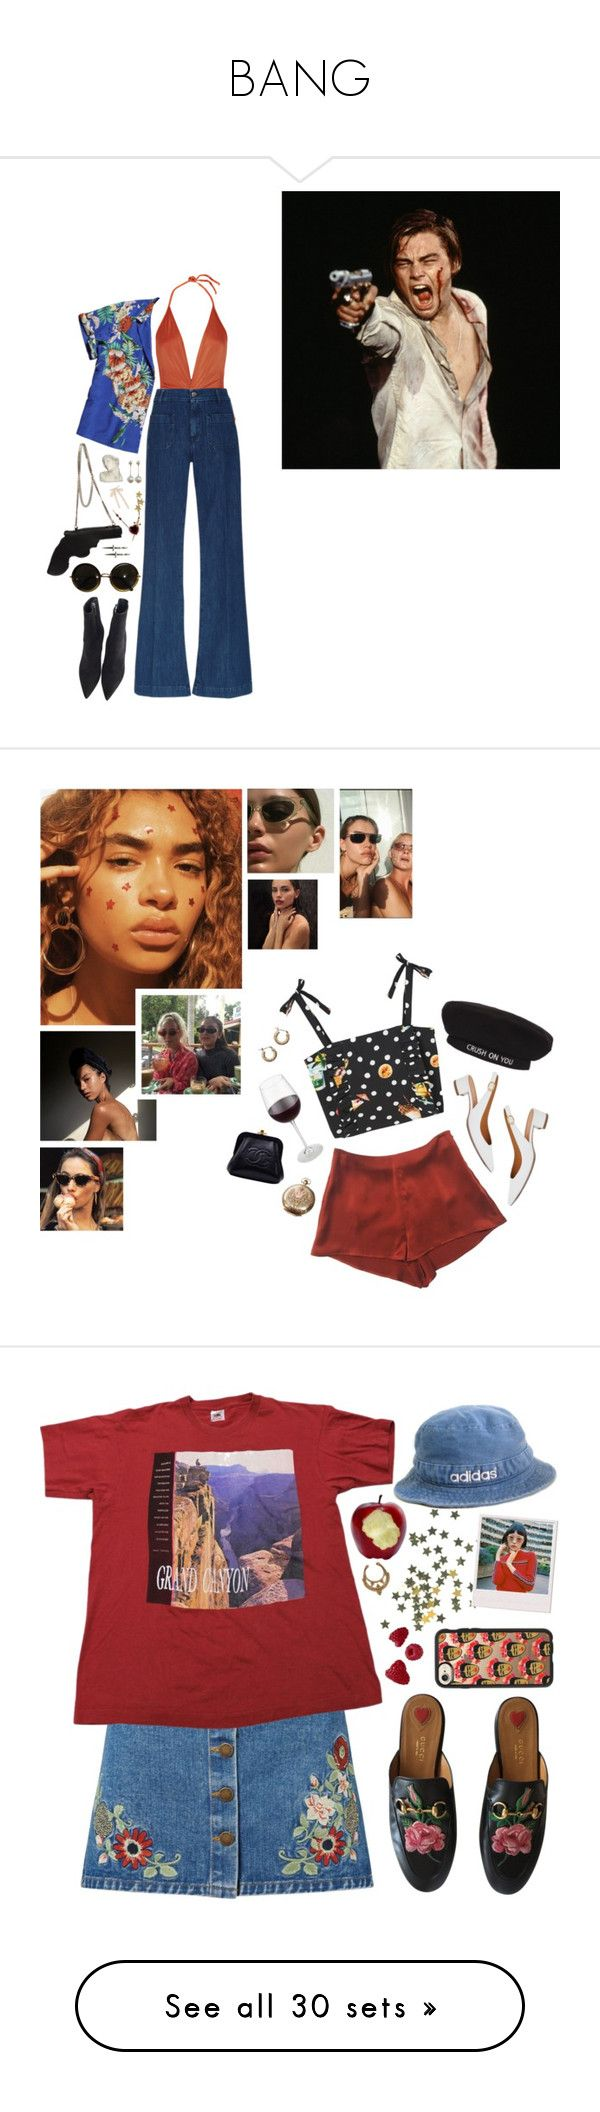 """""""BANG"""" by pretty-basic ❤ liked on Polyvore featuring prettybasic, PBcollection, ADRIANA DEGREAS, Gatsby, The Seafarer, Scotch & Soda, Yves Saint Laurent, Disney Couture, Gianvito Rossi and The Row"""